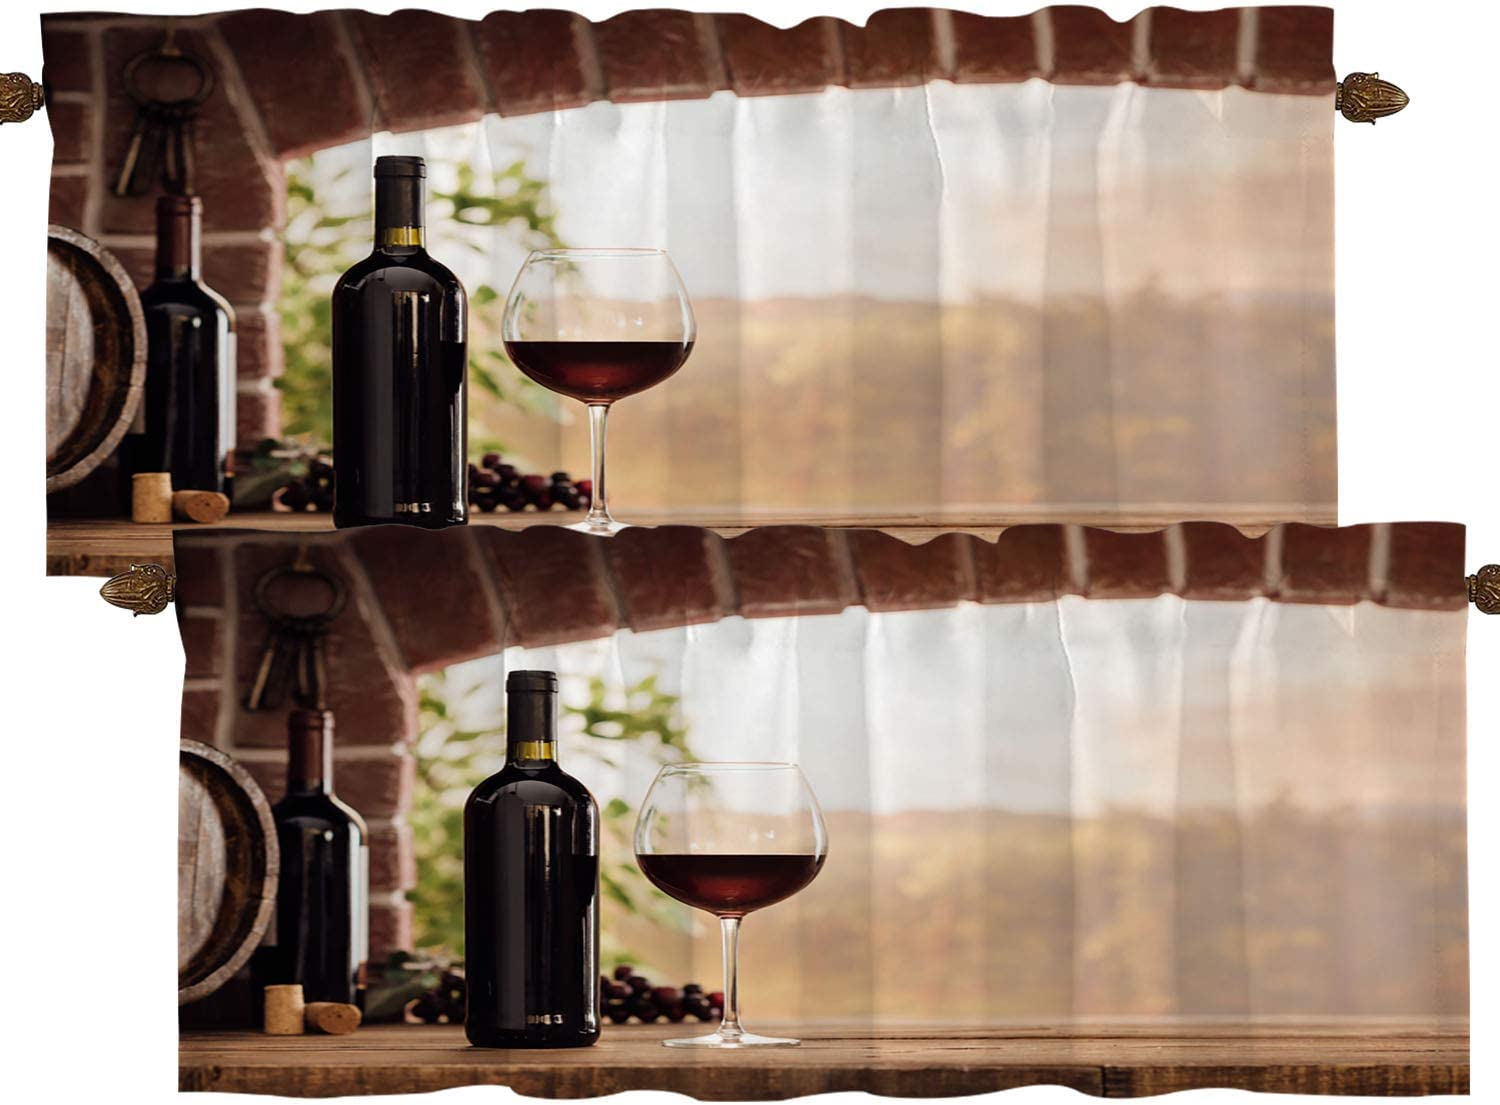 BaoNews Red Wine Sunset Kitchen Valances Window Curtain, Red Wine Bottle Glass Grapes Winery Wines Blackout Decoration Small Window Valances Curtains Drapes for Kitchen Bedroom, 52 X 18 Inch Set of 2